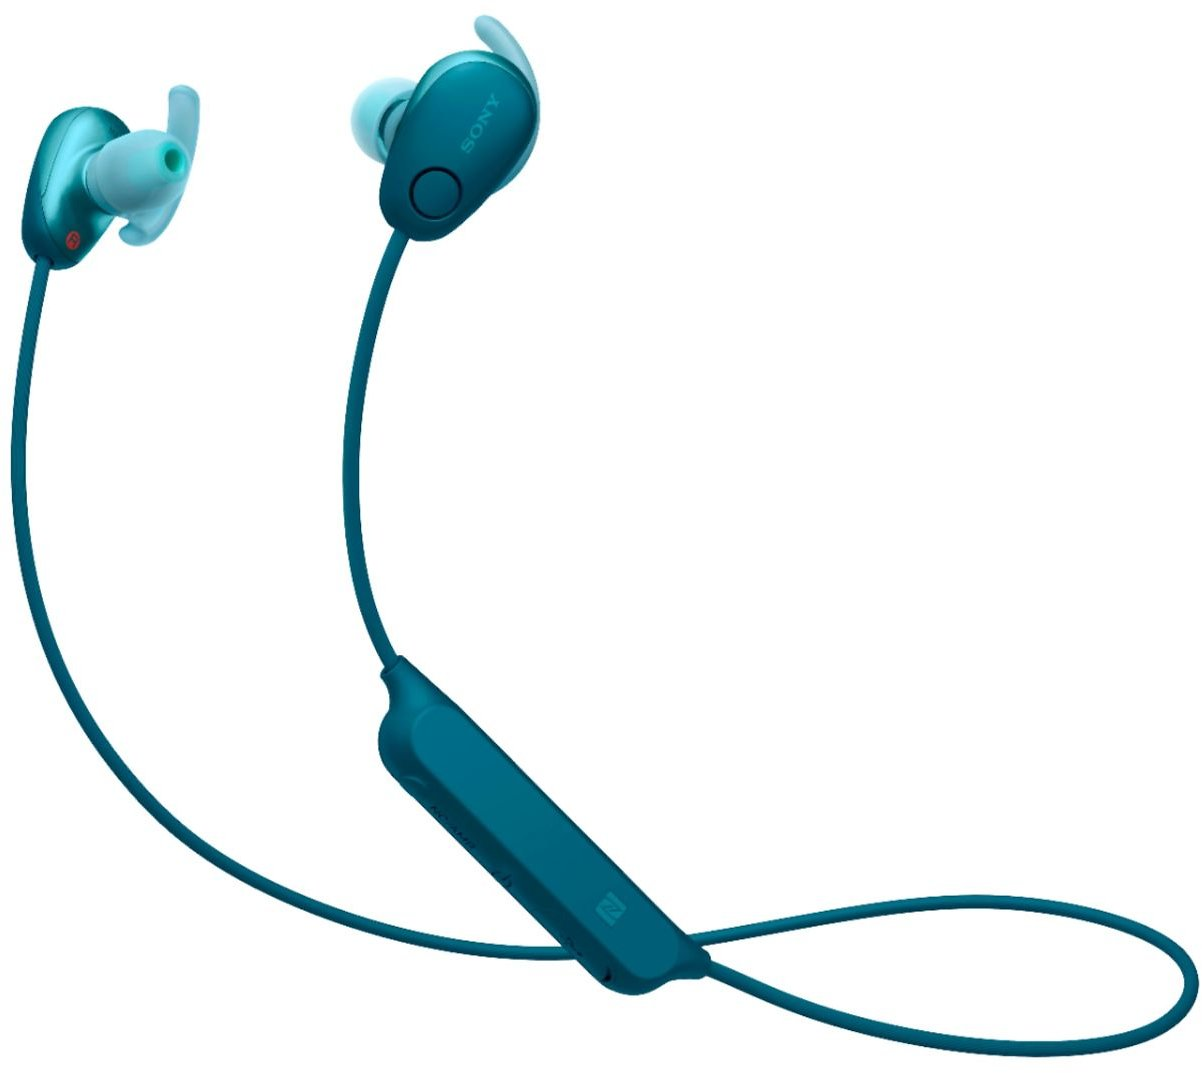 Sony SP600N Sports Wireless Noise Cancelling In-Ear Headphones Blue WISP600N/L